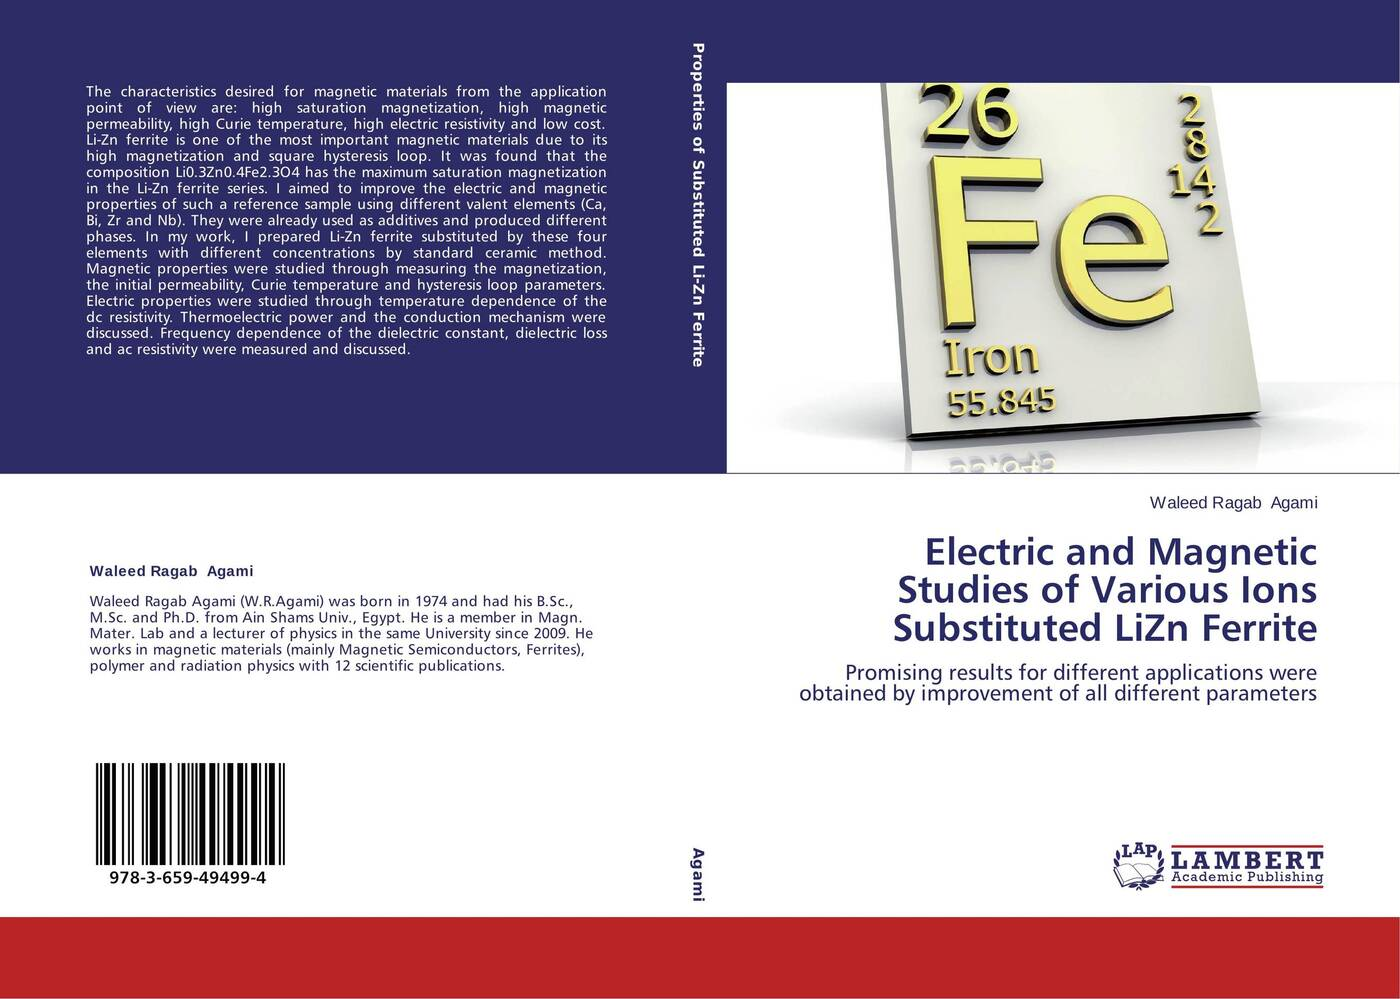 Waleed Ragab Agami Electric and Magnetic Studies of Various Ions Substituted LiZn Ferrite magnetic and dielectric properties of materials